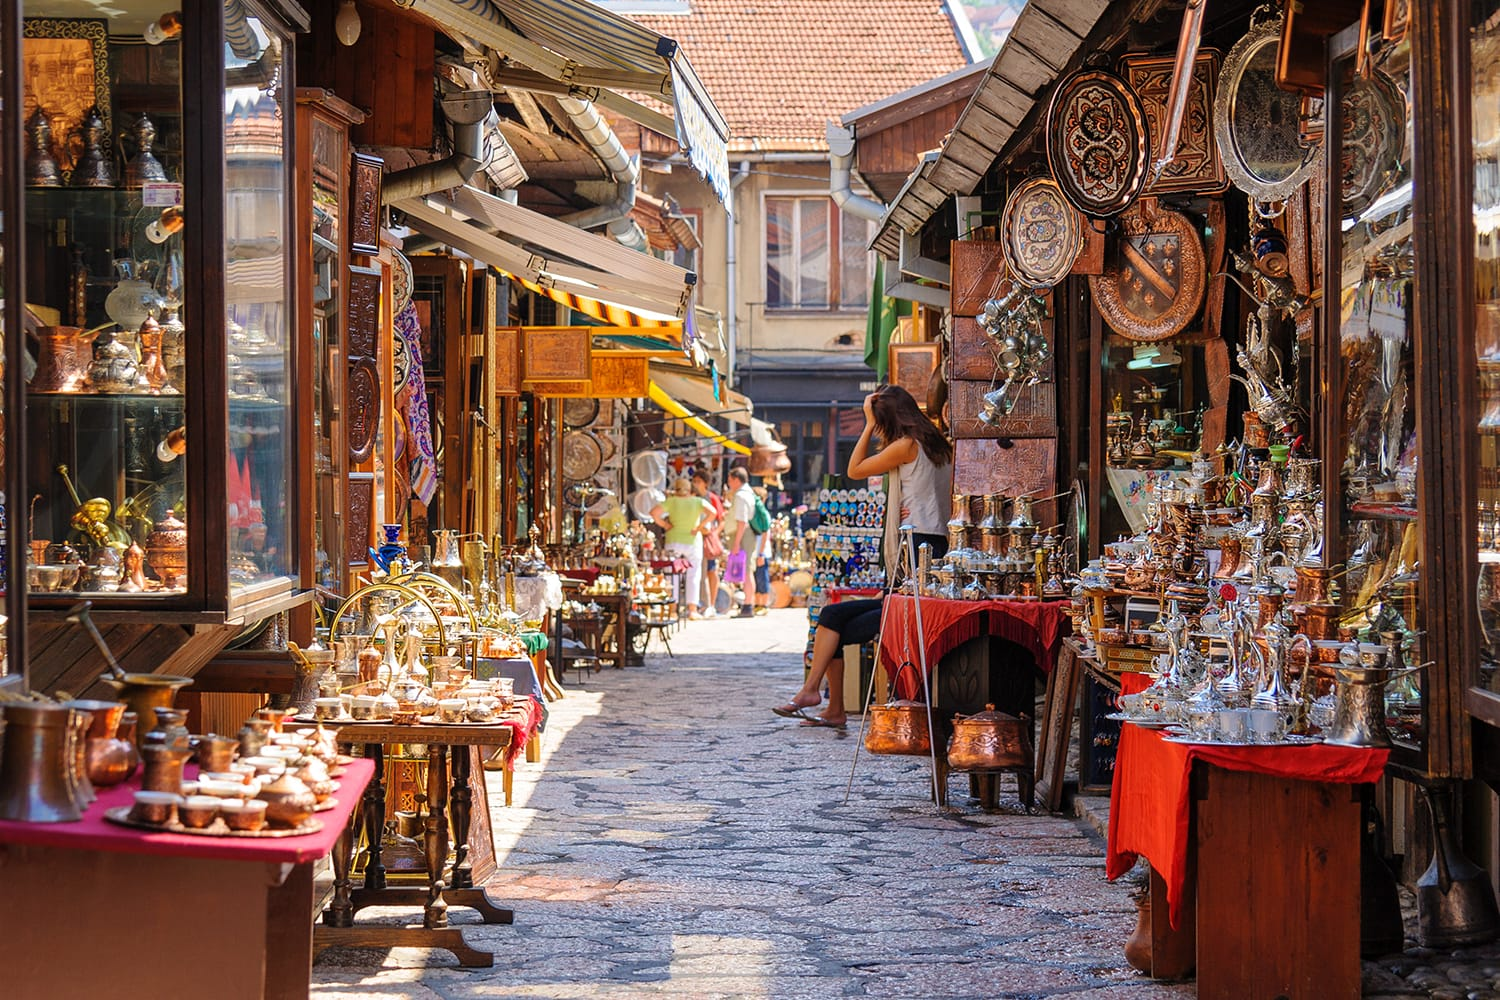 Street with shops selling souvenirs at Bascarsija in the old city district of Sarajevo, Bosnia and Herzegovina